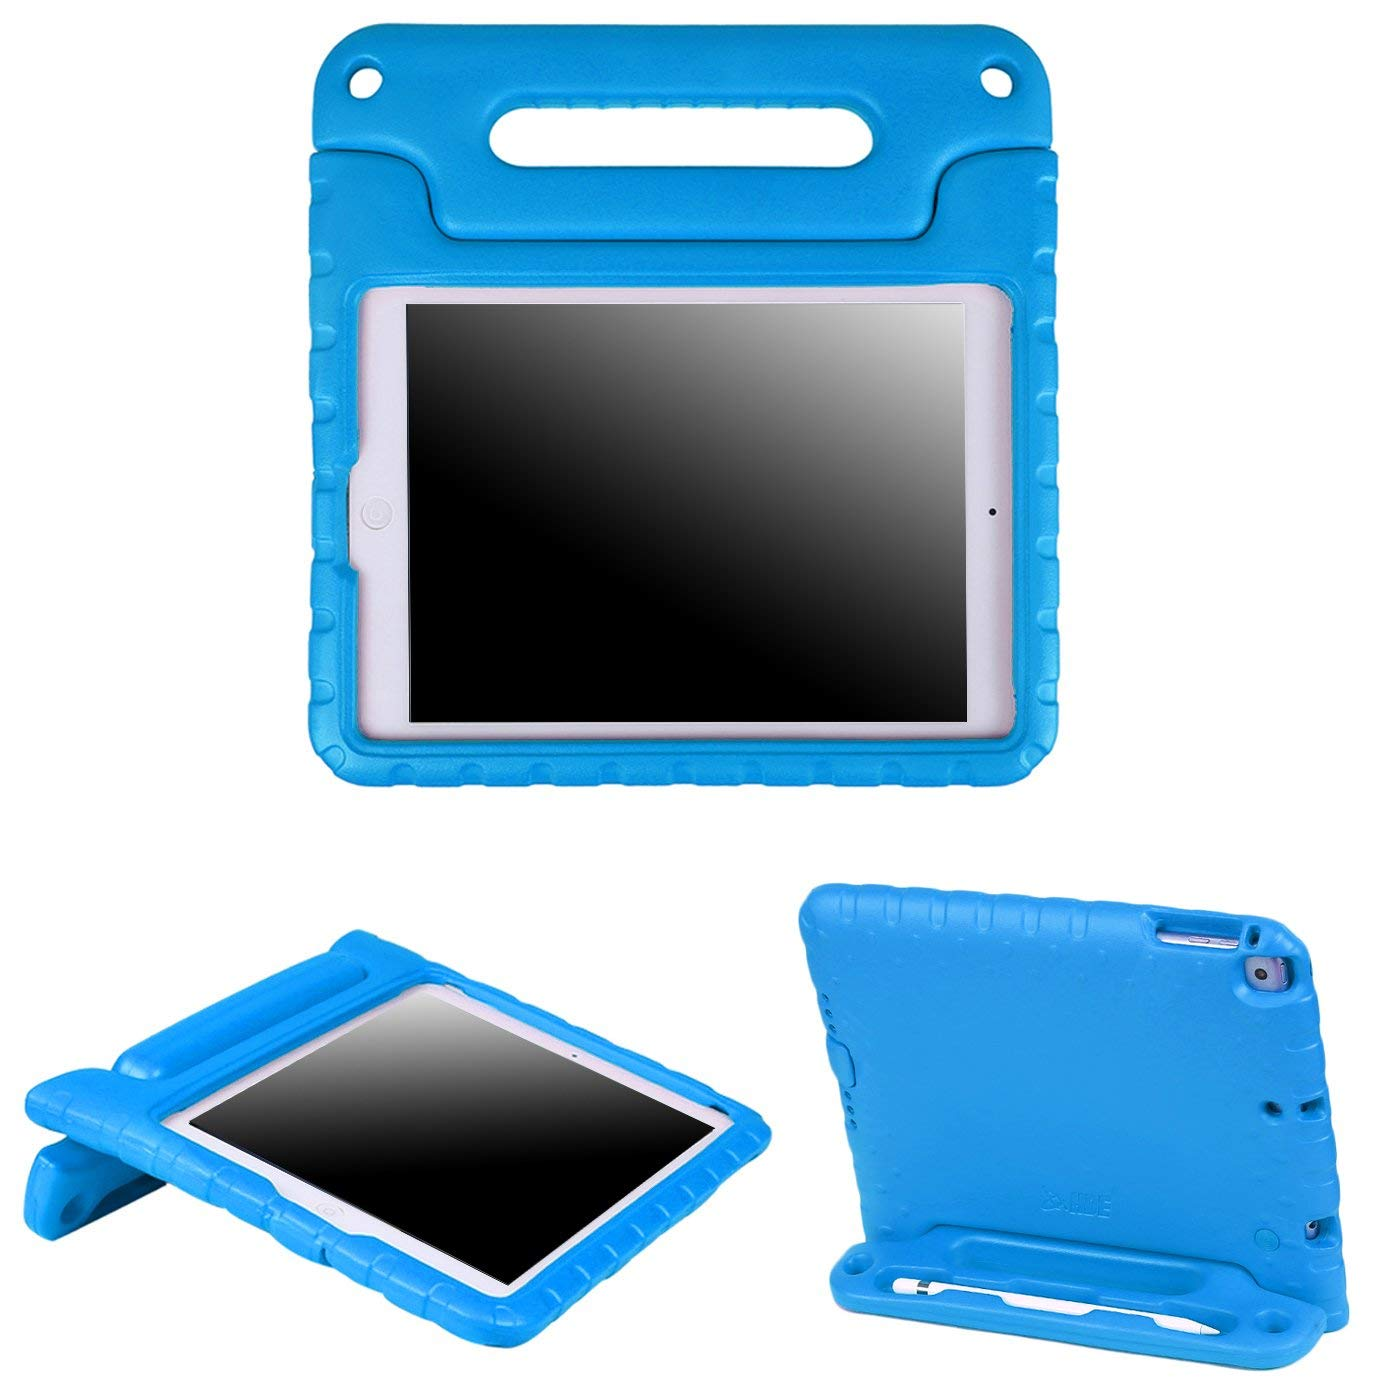 HDE Case for iPad 9.7 inch 2018 / 2017 Kids Shock Proof Bumper Cover Stand with Handle for New 6th Gen Apple Education iPad